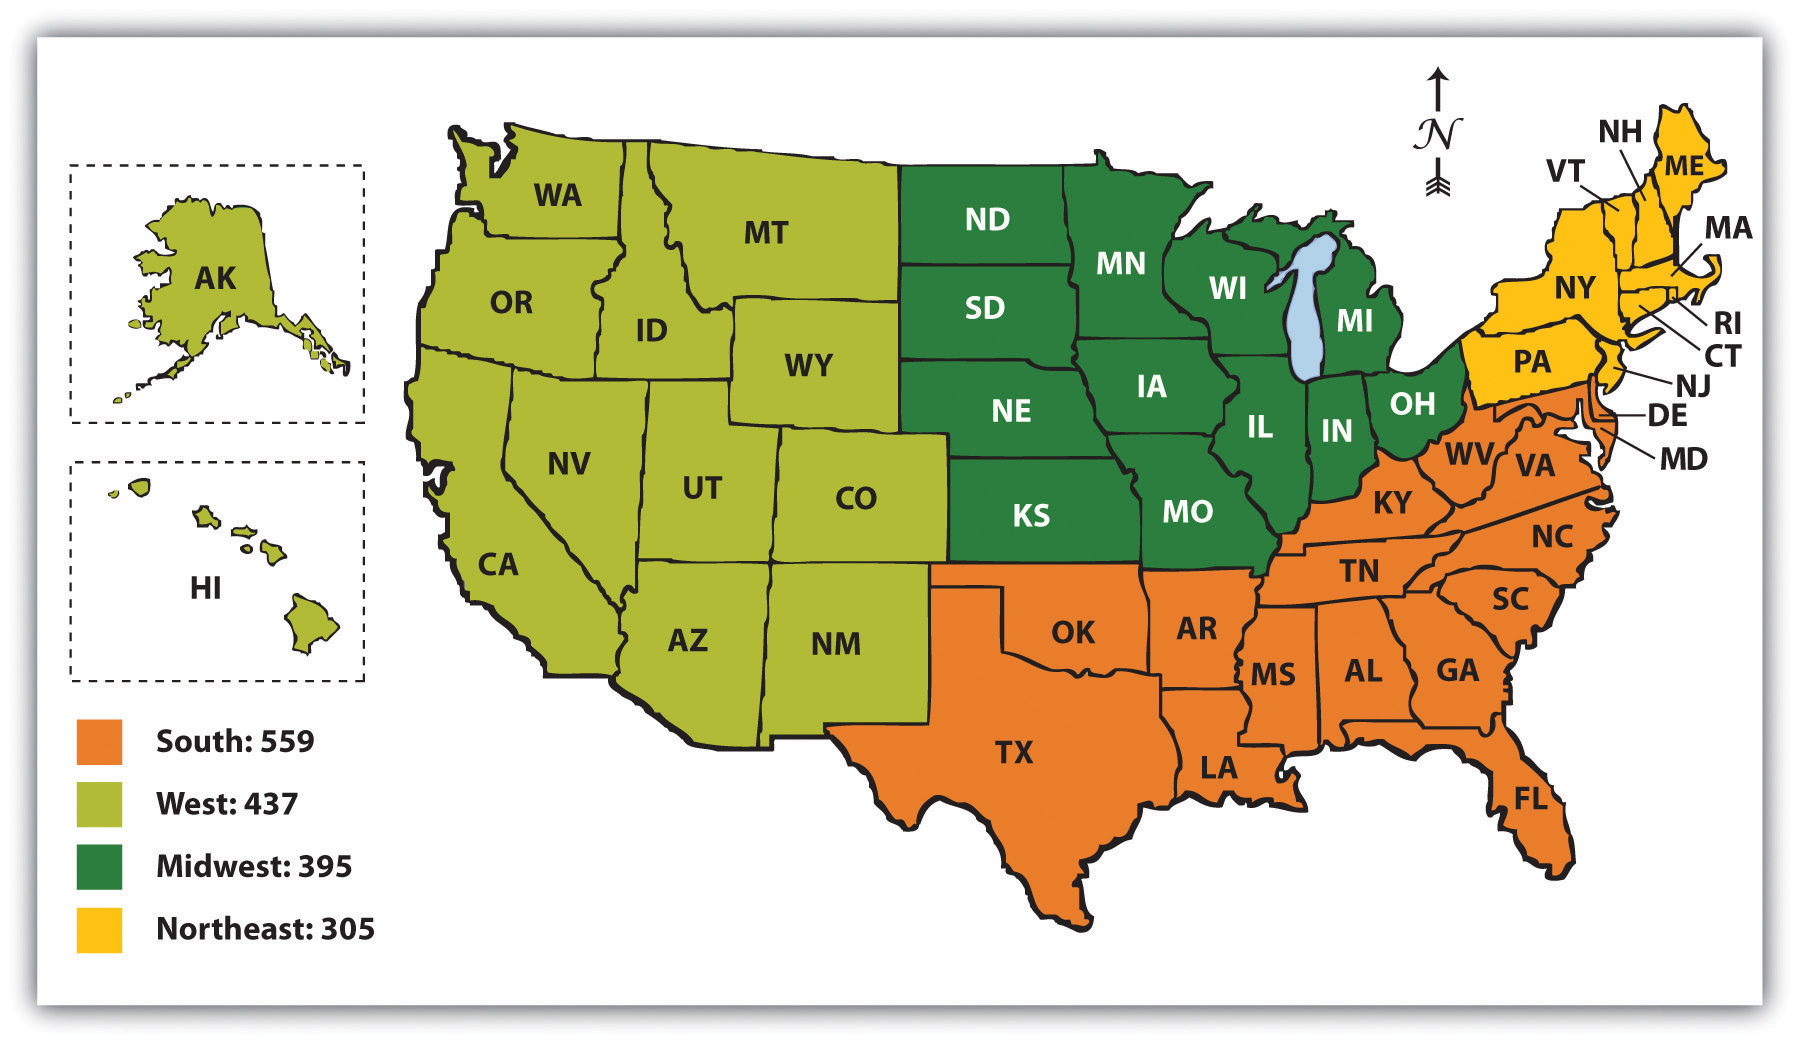 State Capitals Song YouTube Southern Capitals States YouTube USA - Usa state capitals map